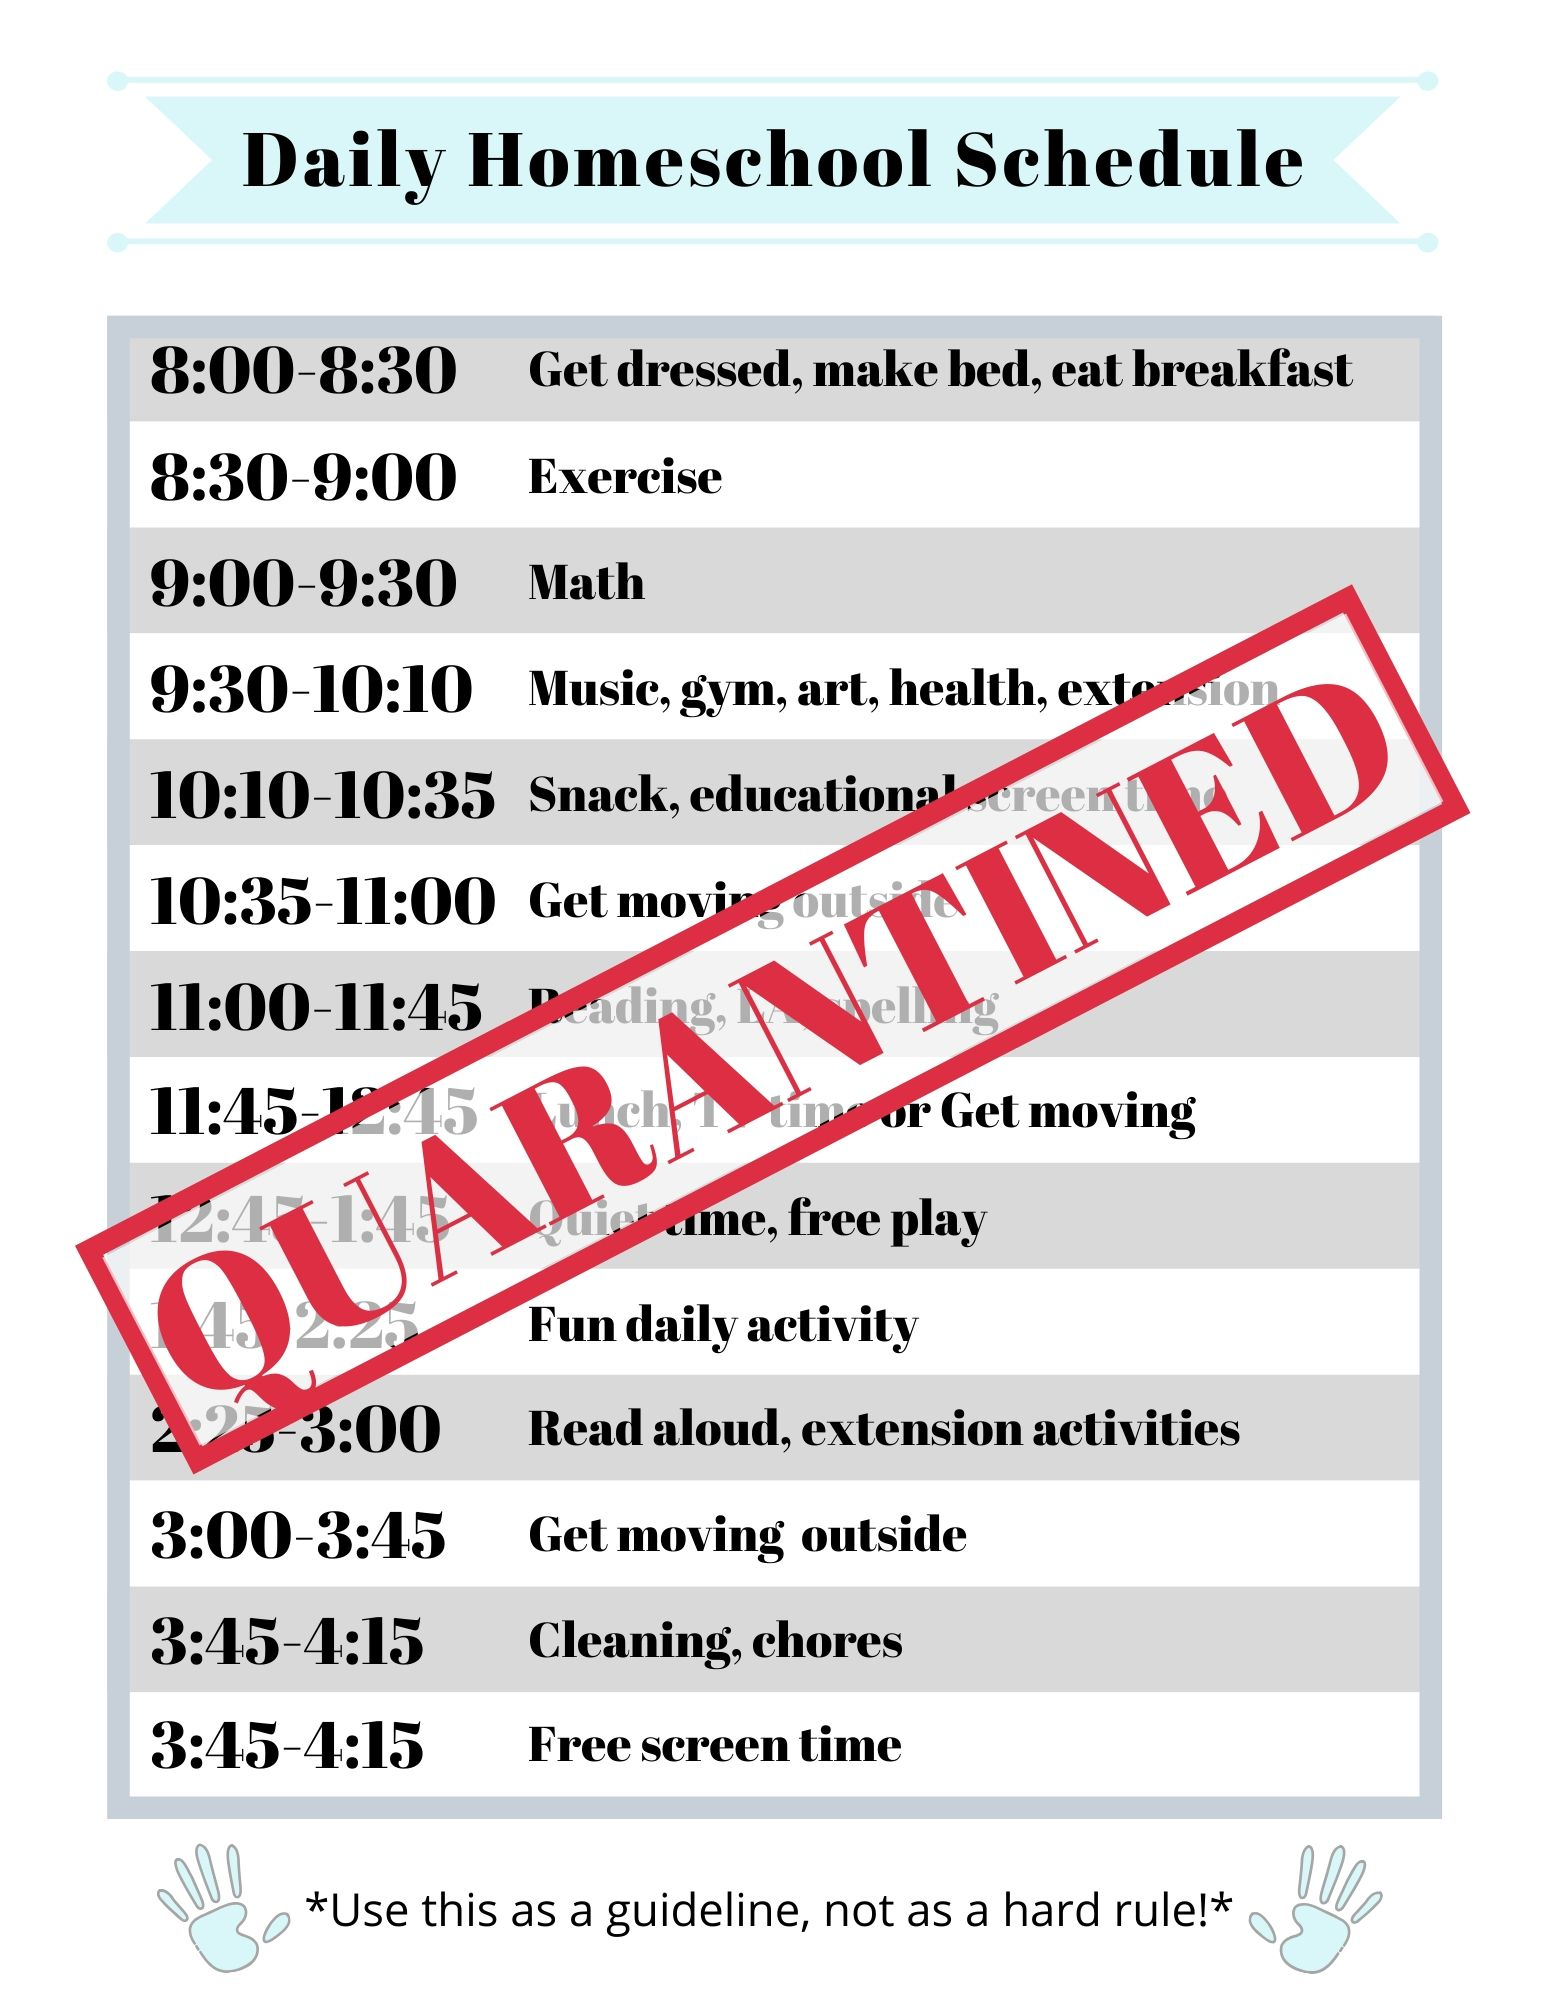 Here is our temporary homeschool schedule to give our kids some structure.